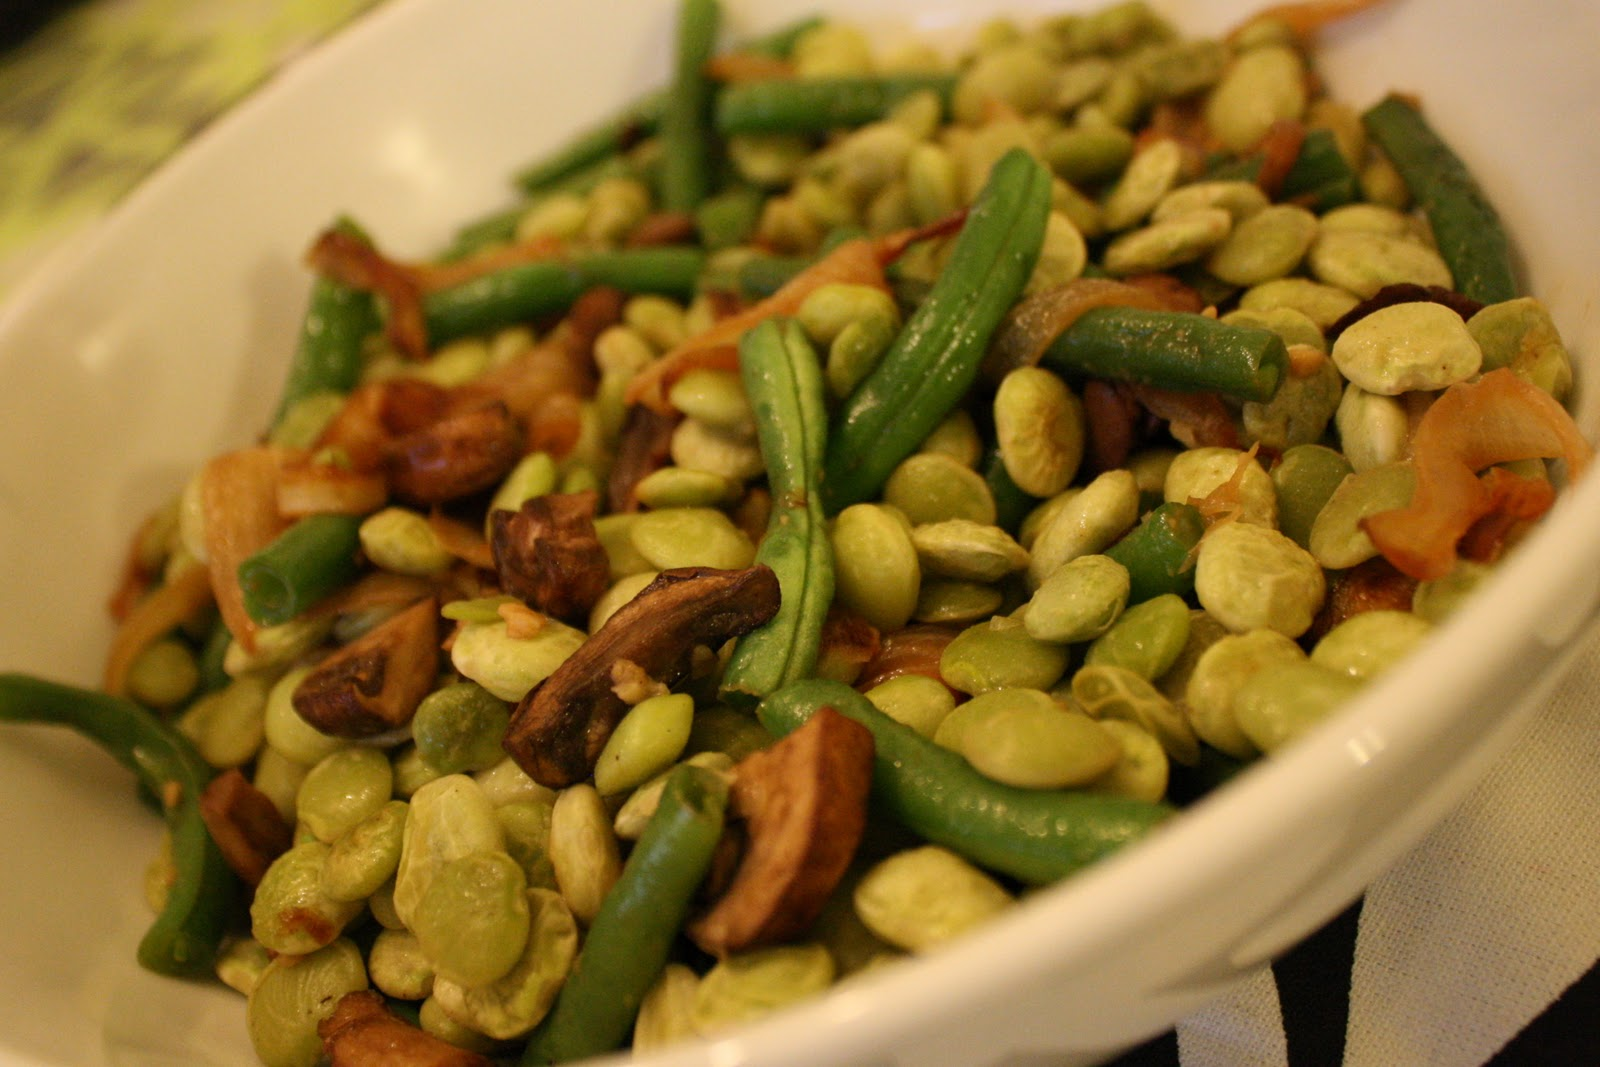 52 Mantels Sauteed Lima Beans And Green Beans With